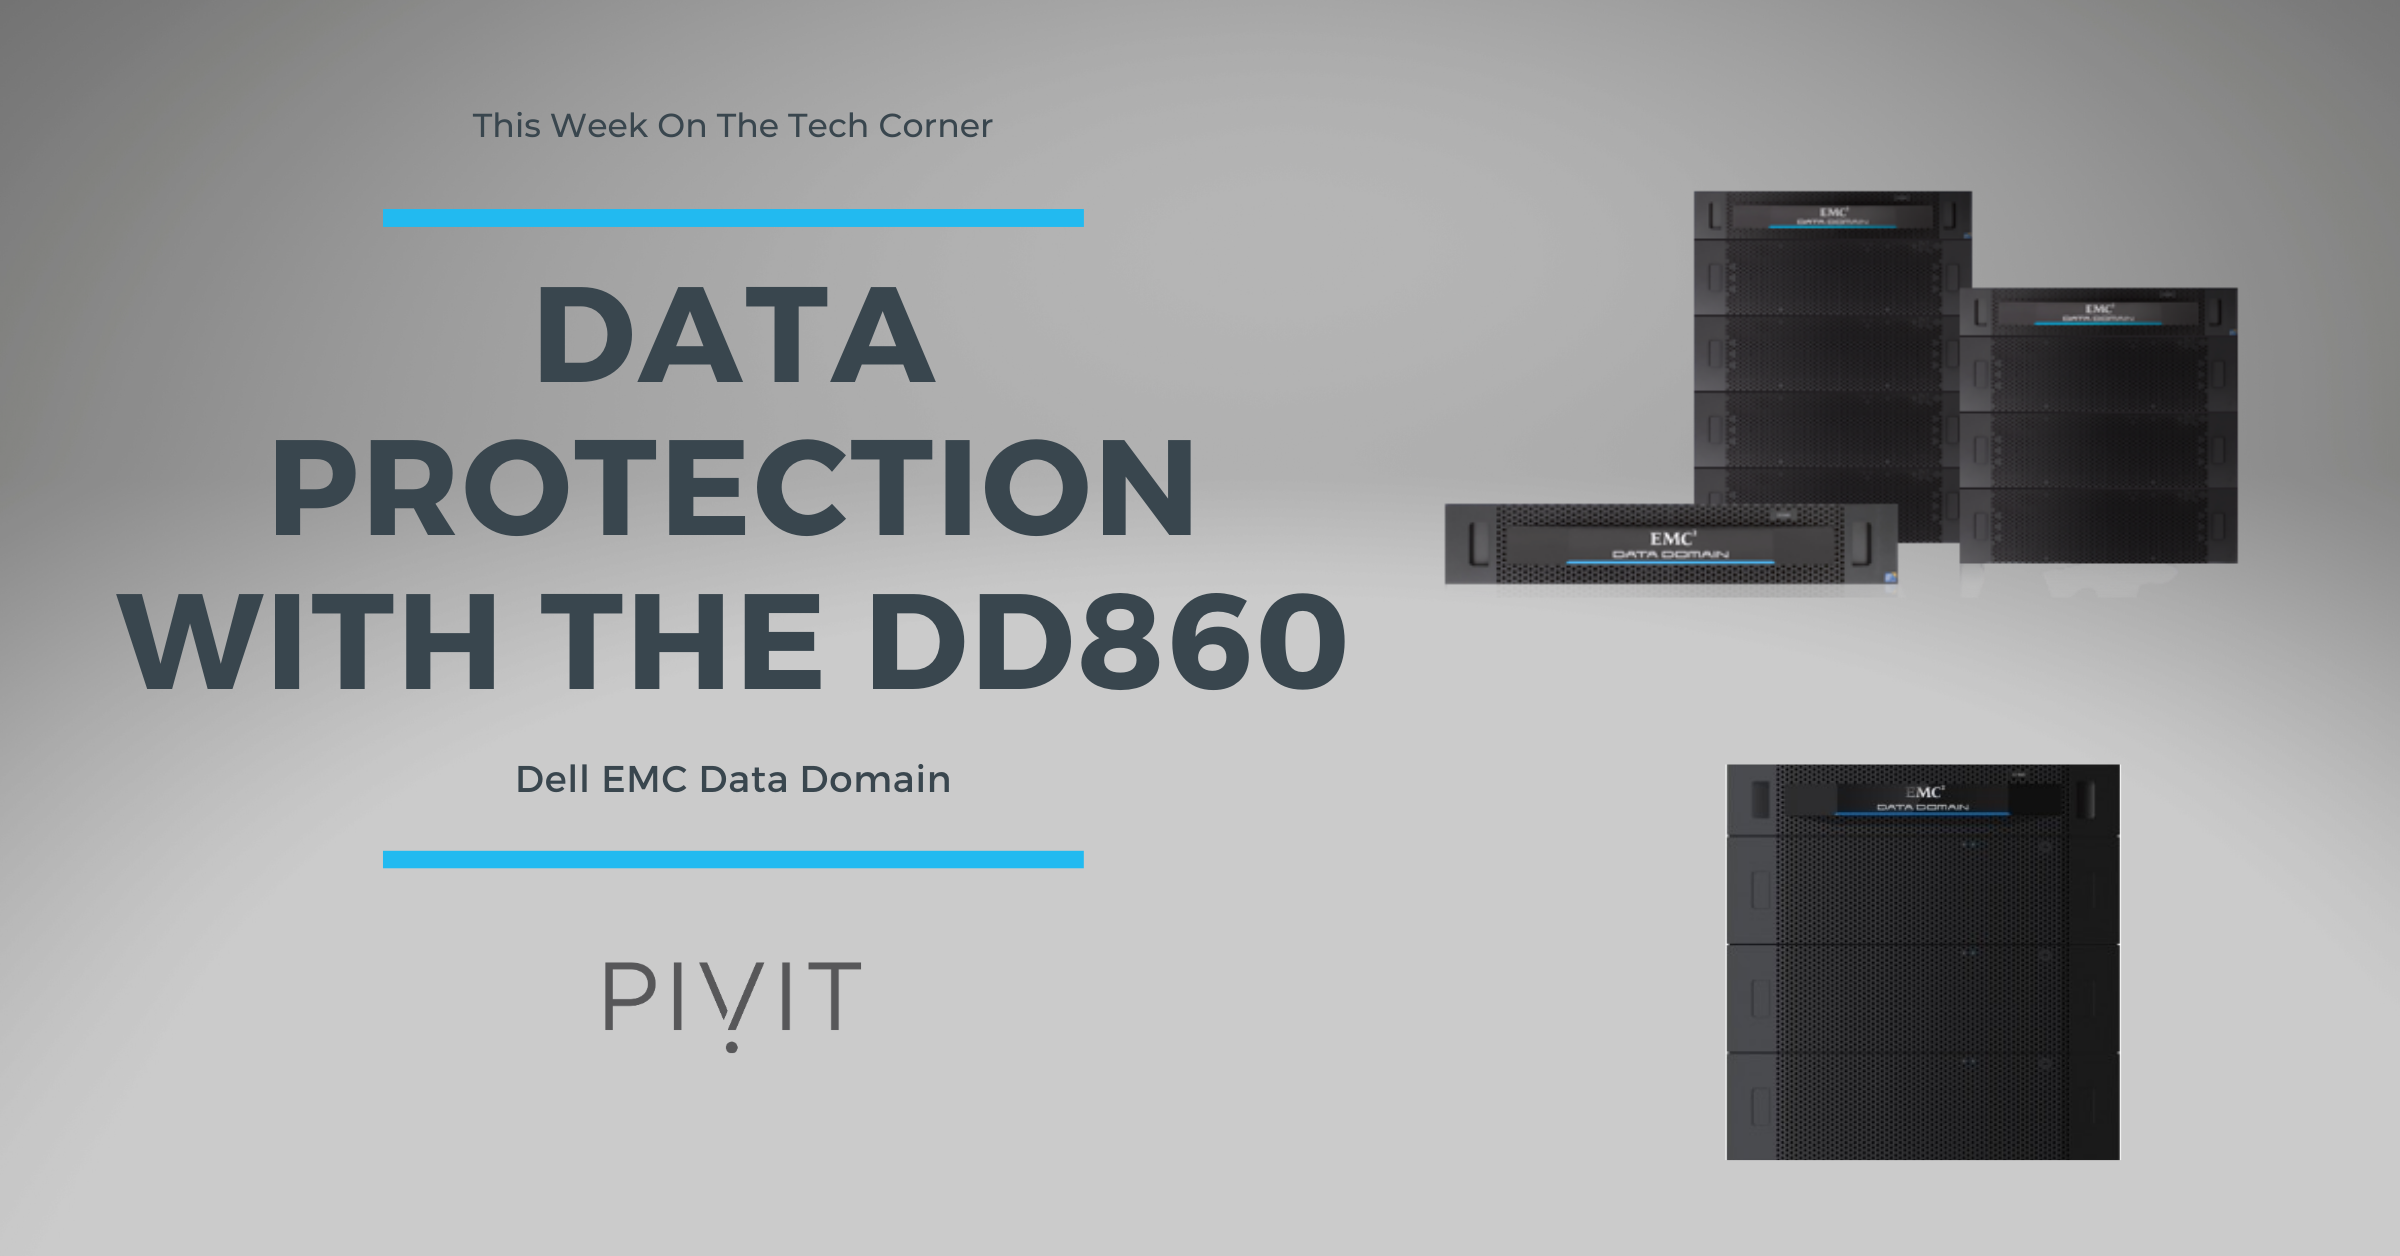 How Dell EMC's Data Domain DD860 Protects the Integrity of Your Data